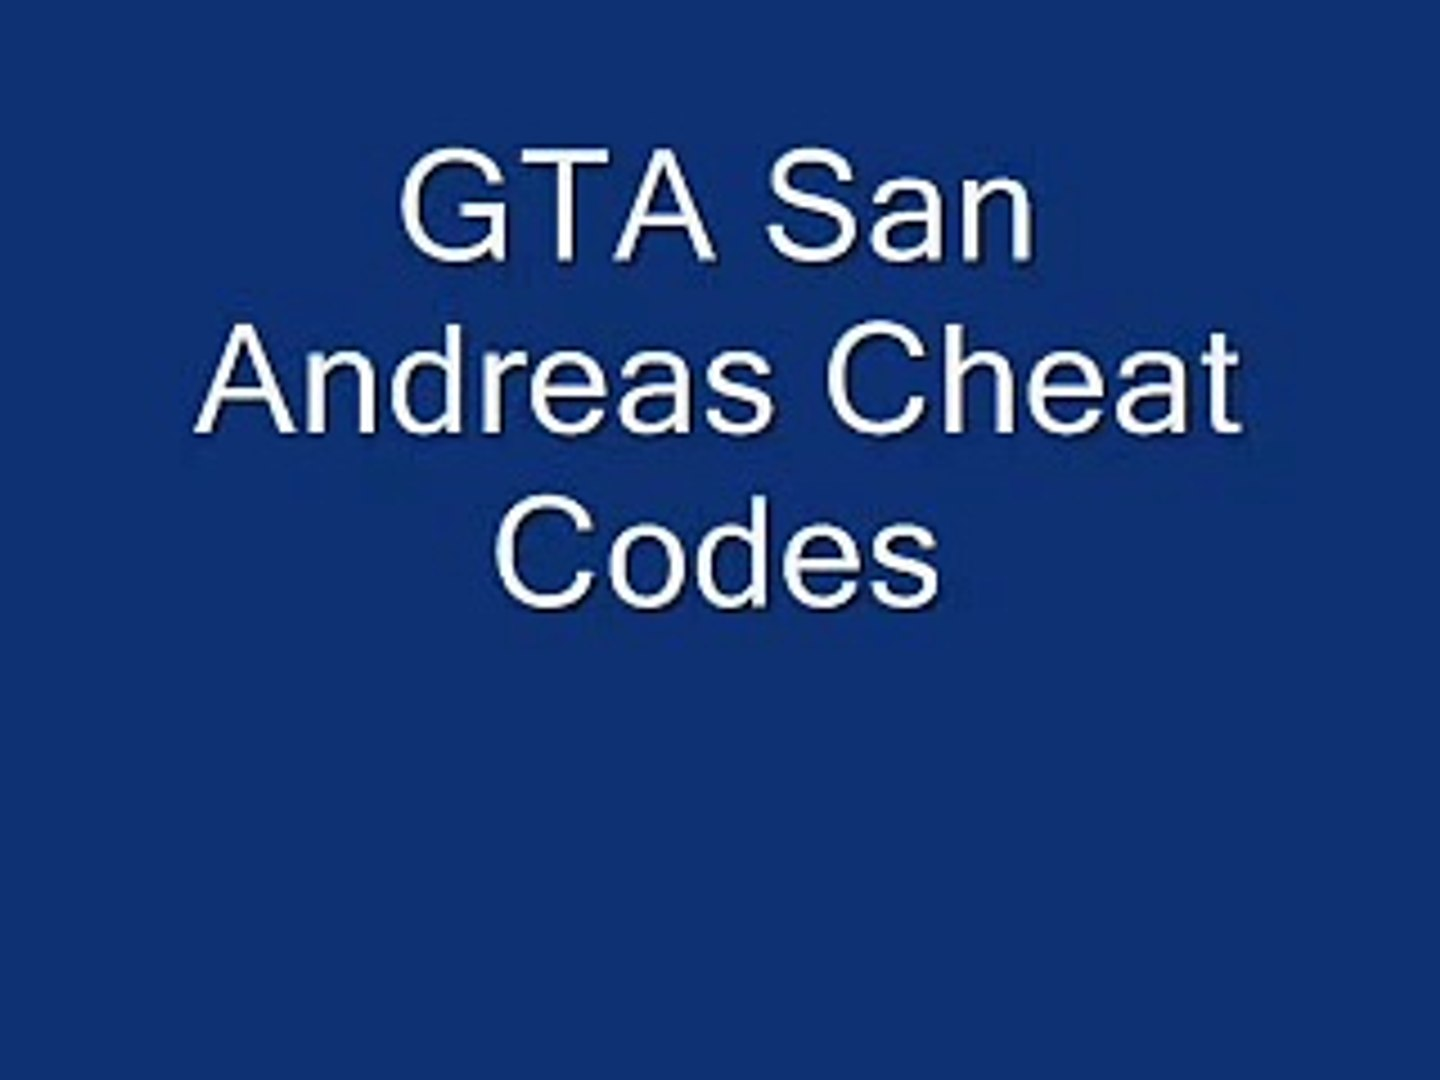 GTA San Andreas Cheat Codes